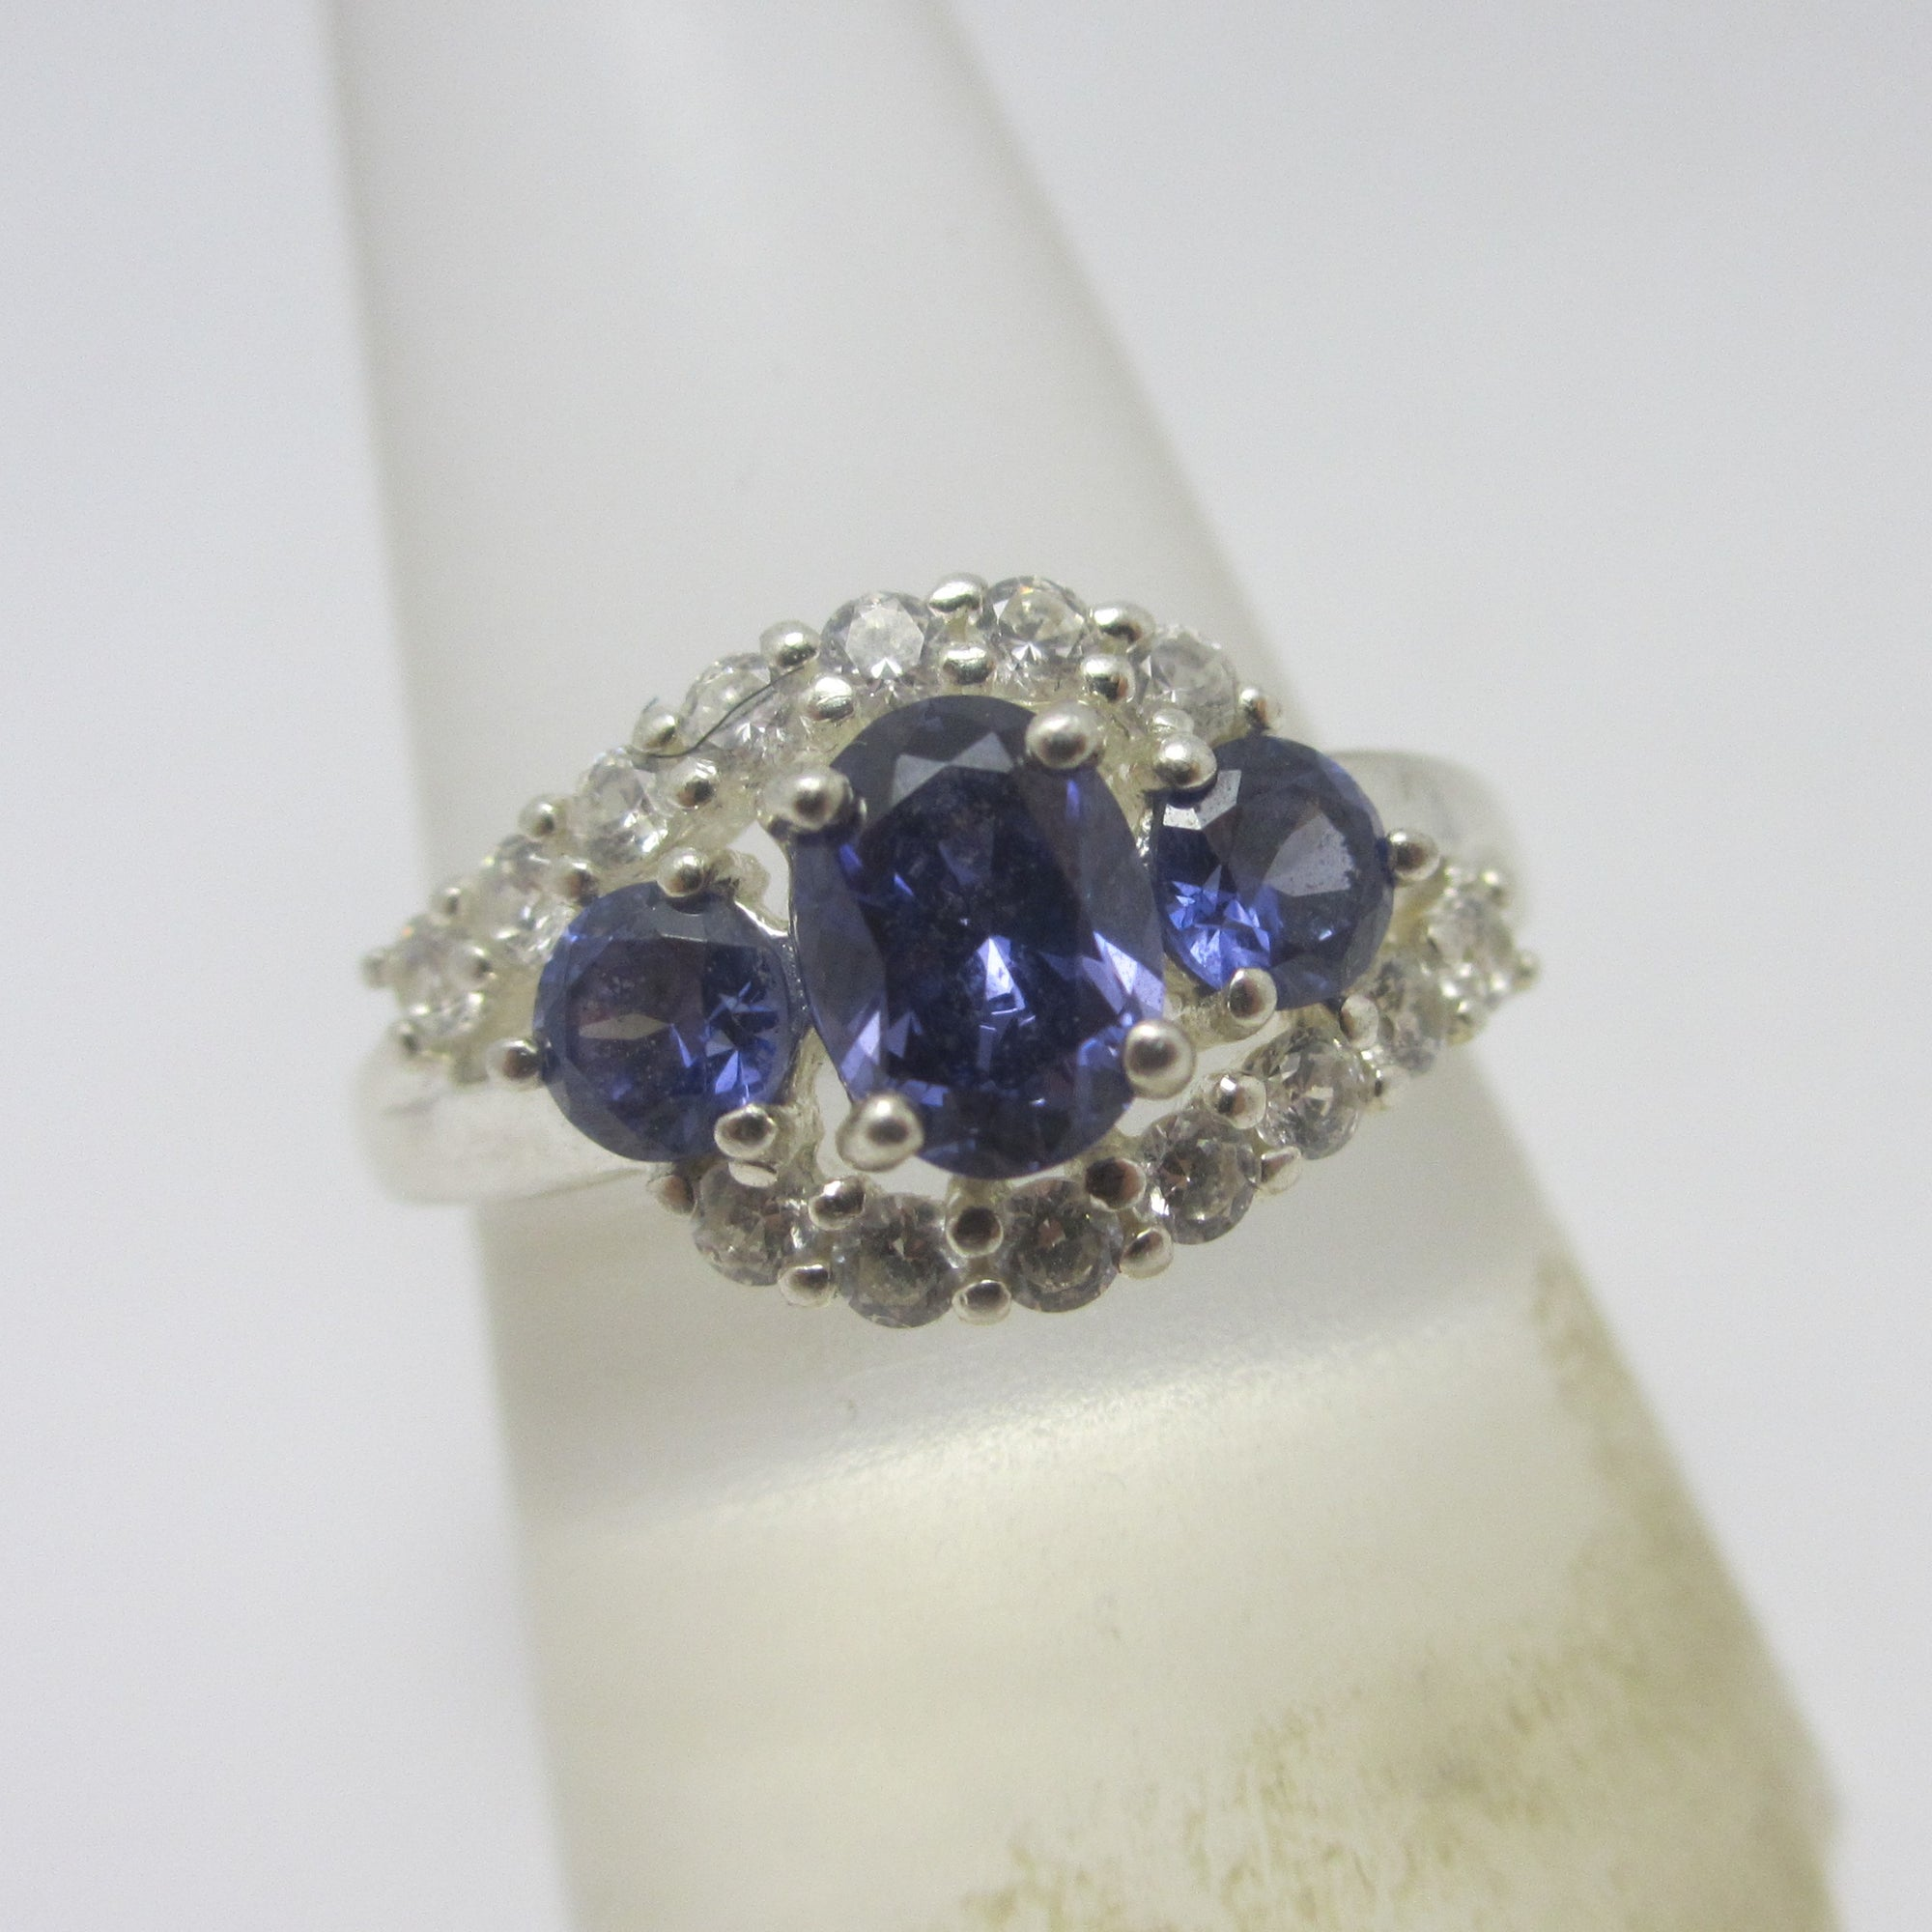 Blue Tourmaline DQCZ Diamond Sterling Silver Ring Vintage c1980